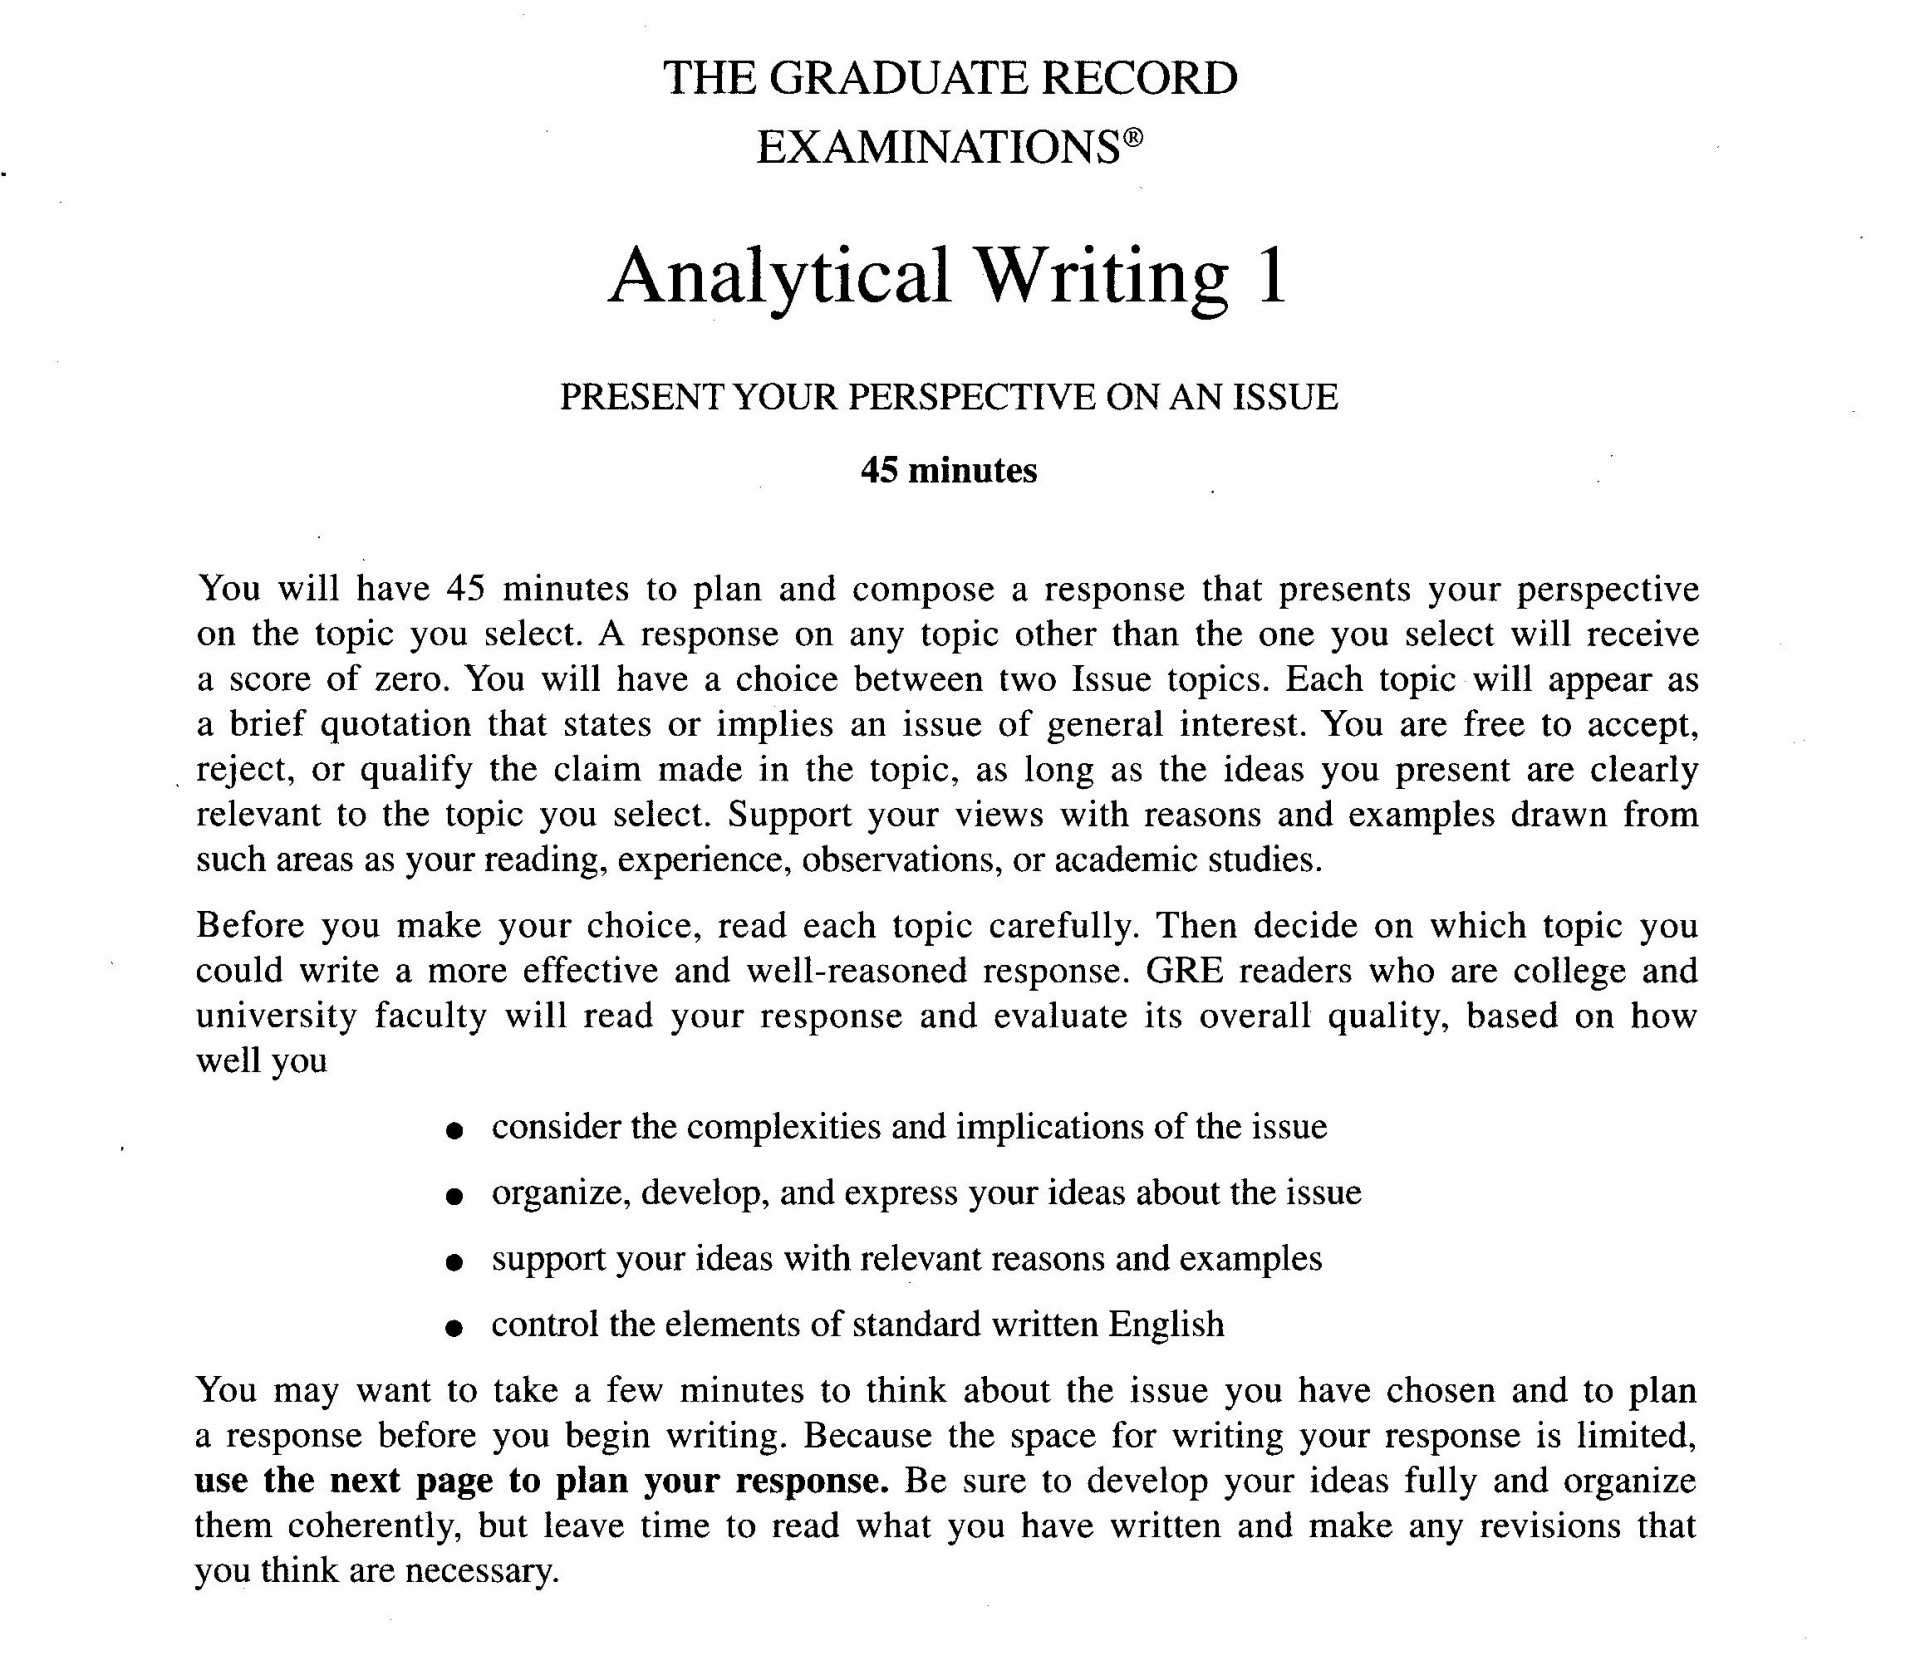 001 Essay Example Analytical20writing20issue20task20directions20for20gre201 Gre Unbelievable Examples Issue 6 Awa 1920